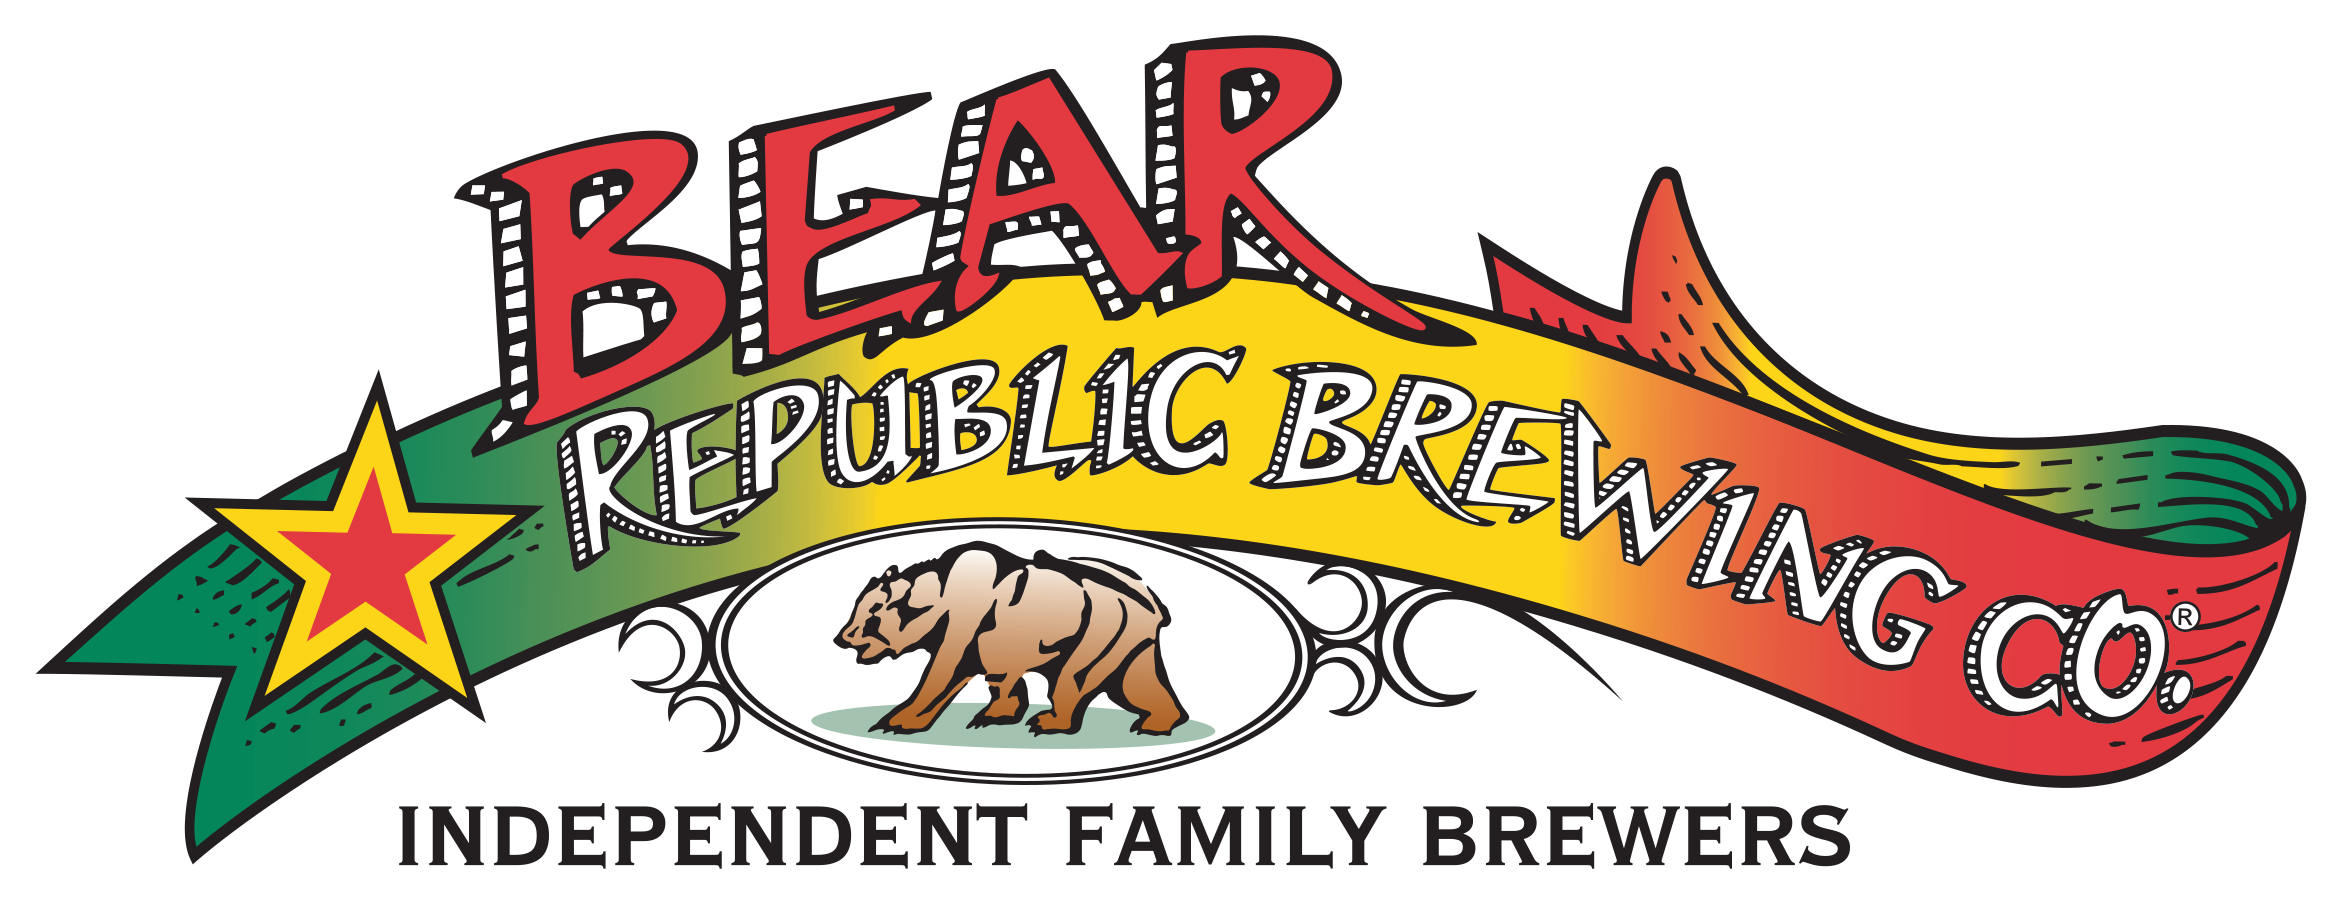 BearRepublicBC BANNER LOGO 2017-white-outline.png